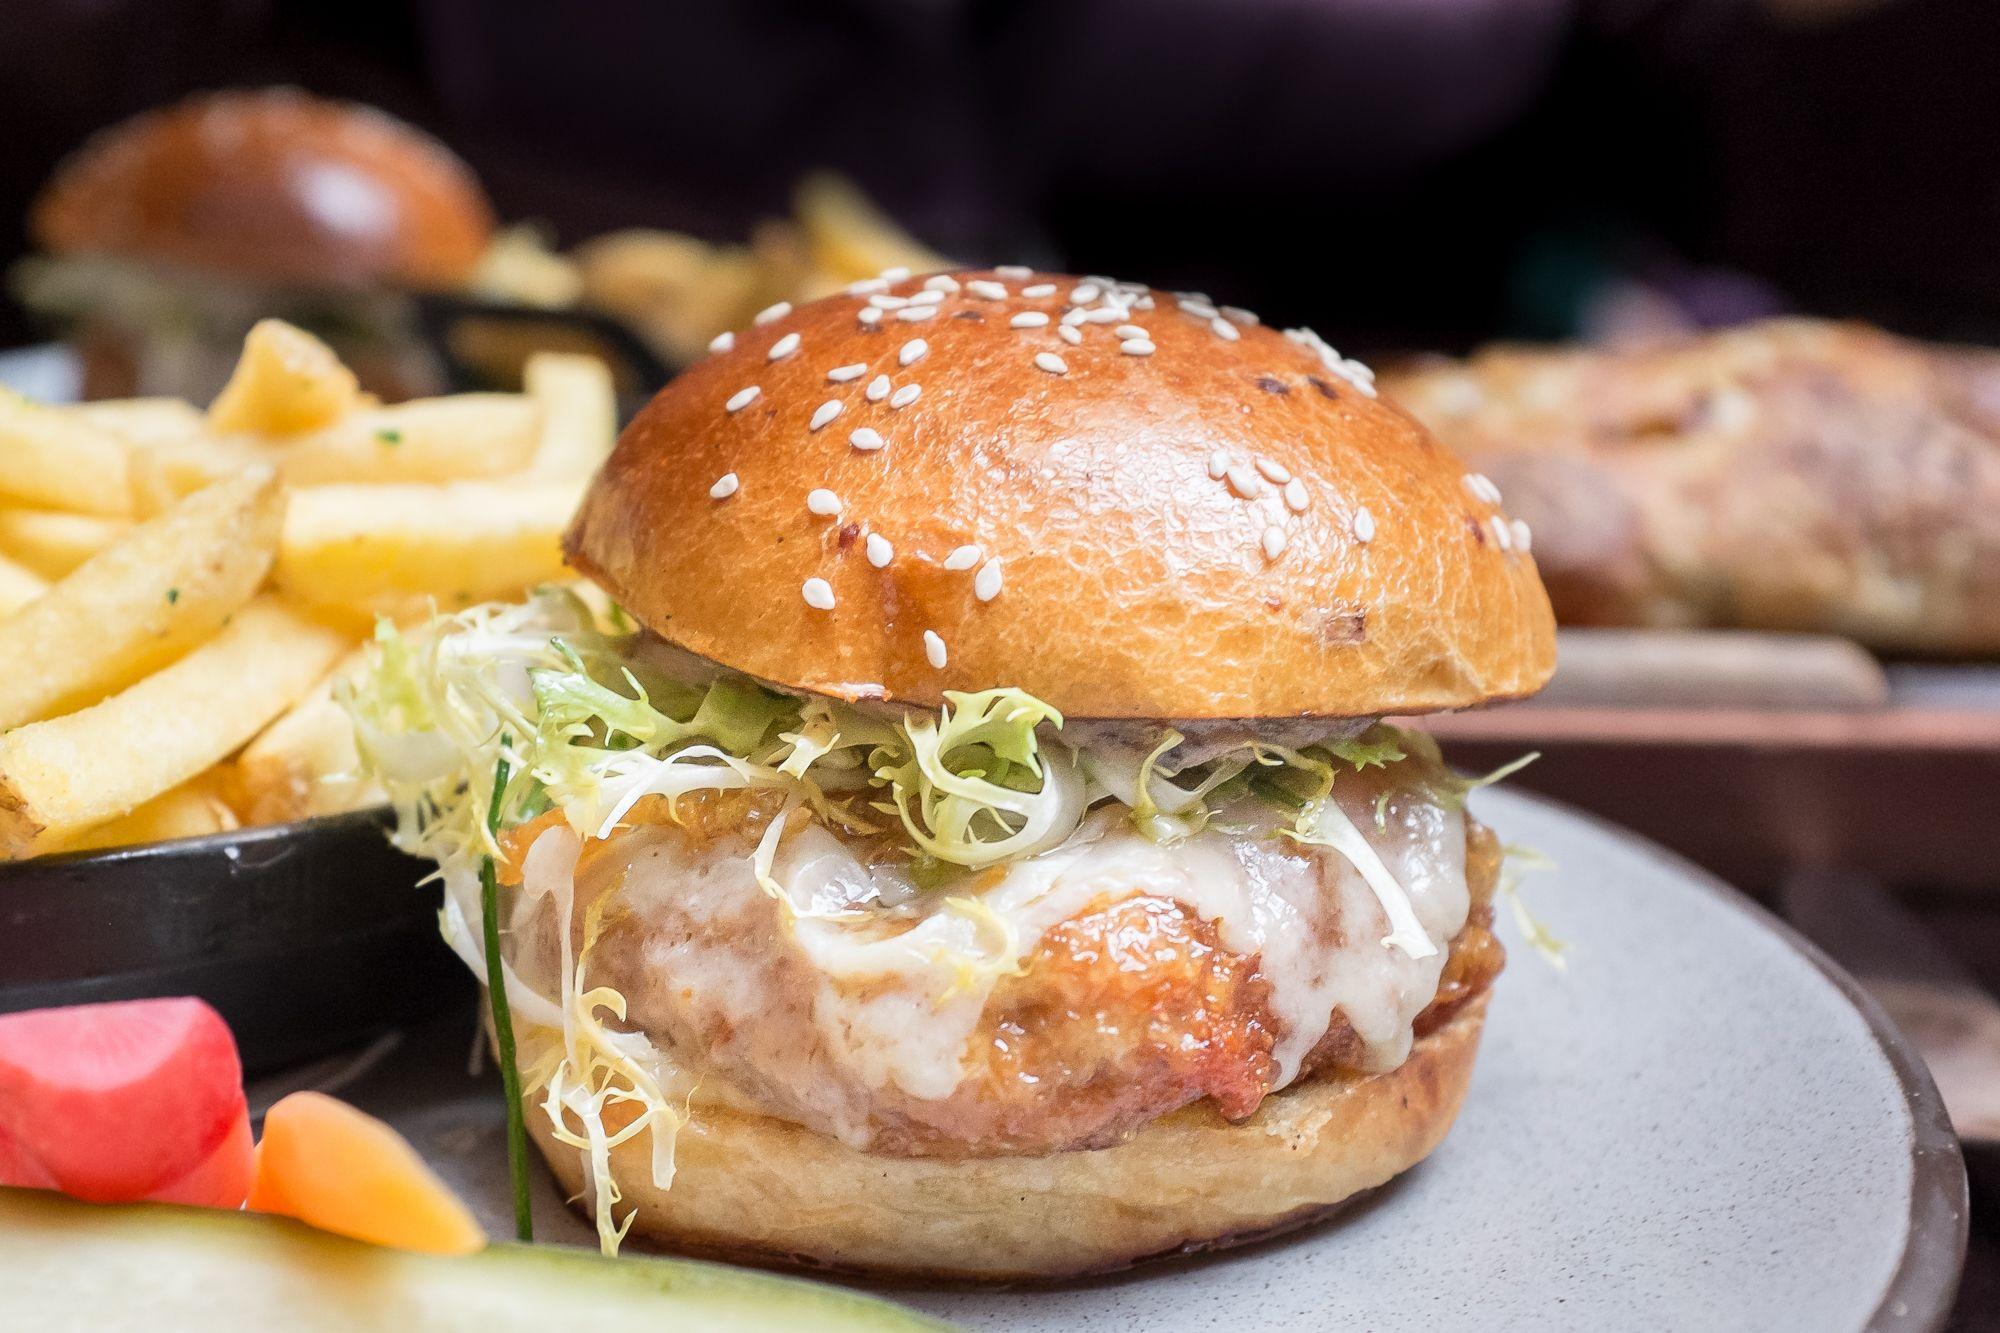 chef daniel humm's chicken burger at the nomad